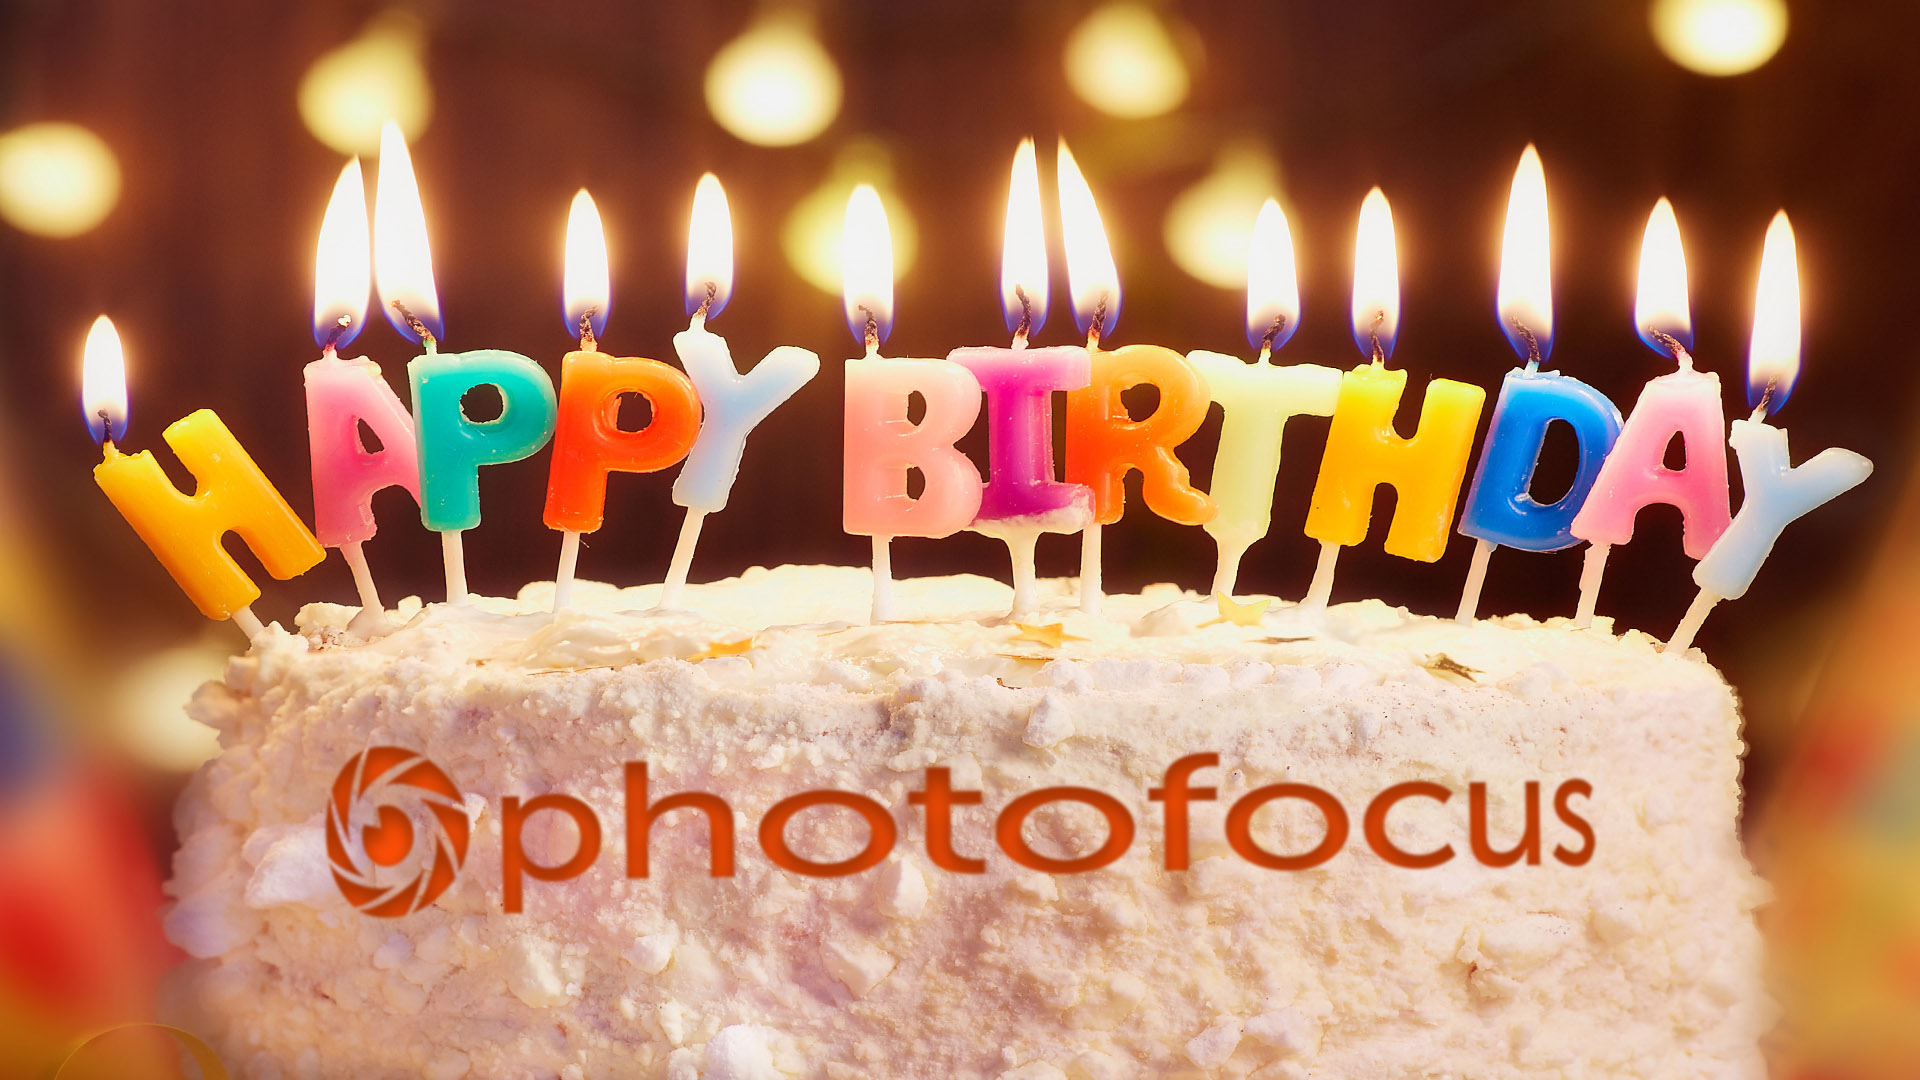 Happy Birthday to us! Photofocus turns 20 today!